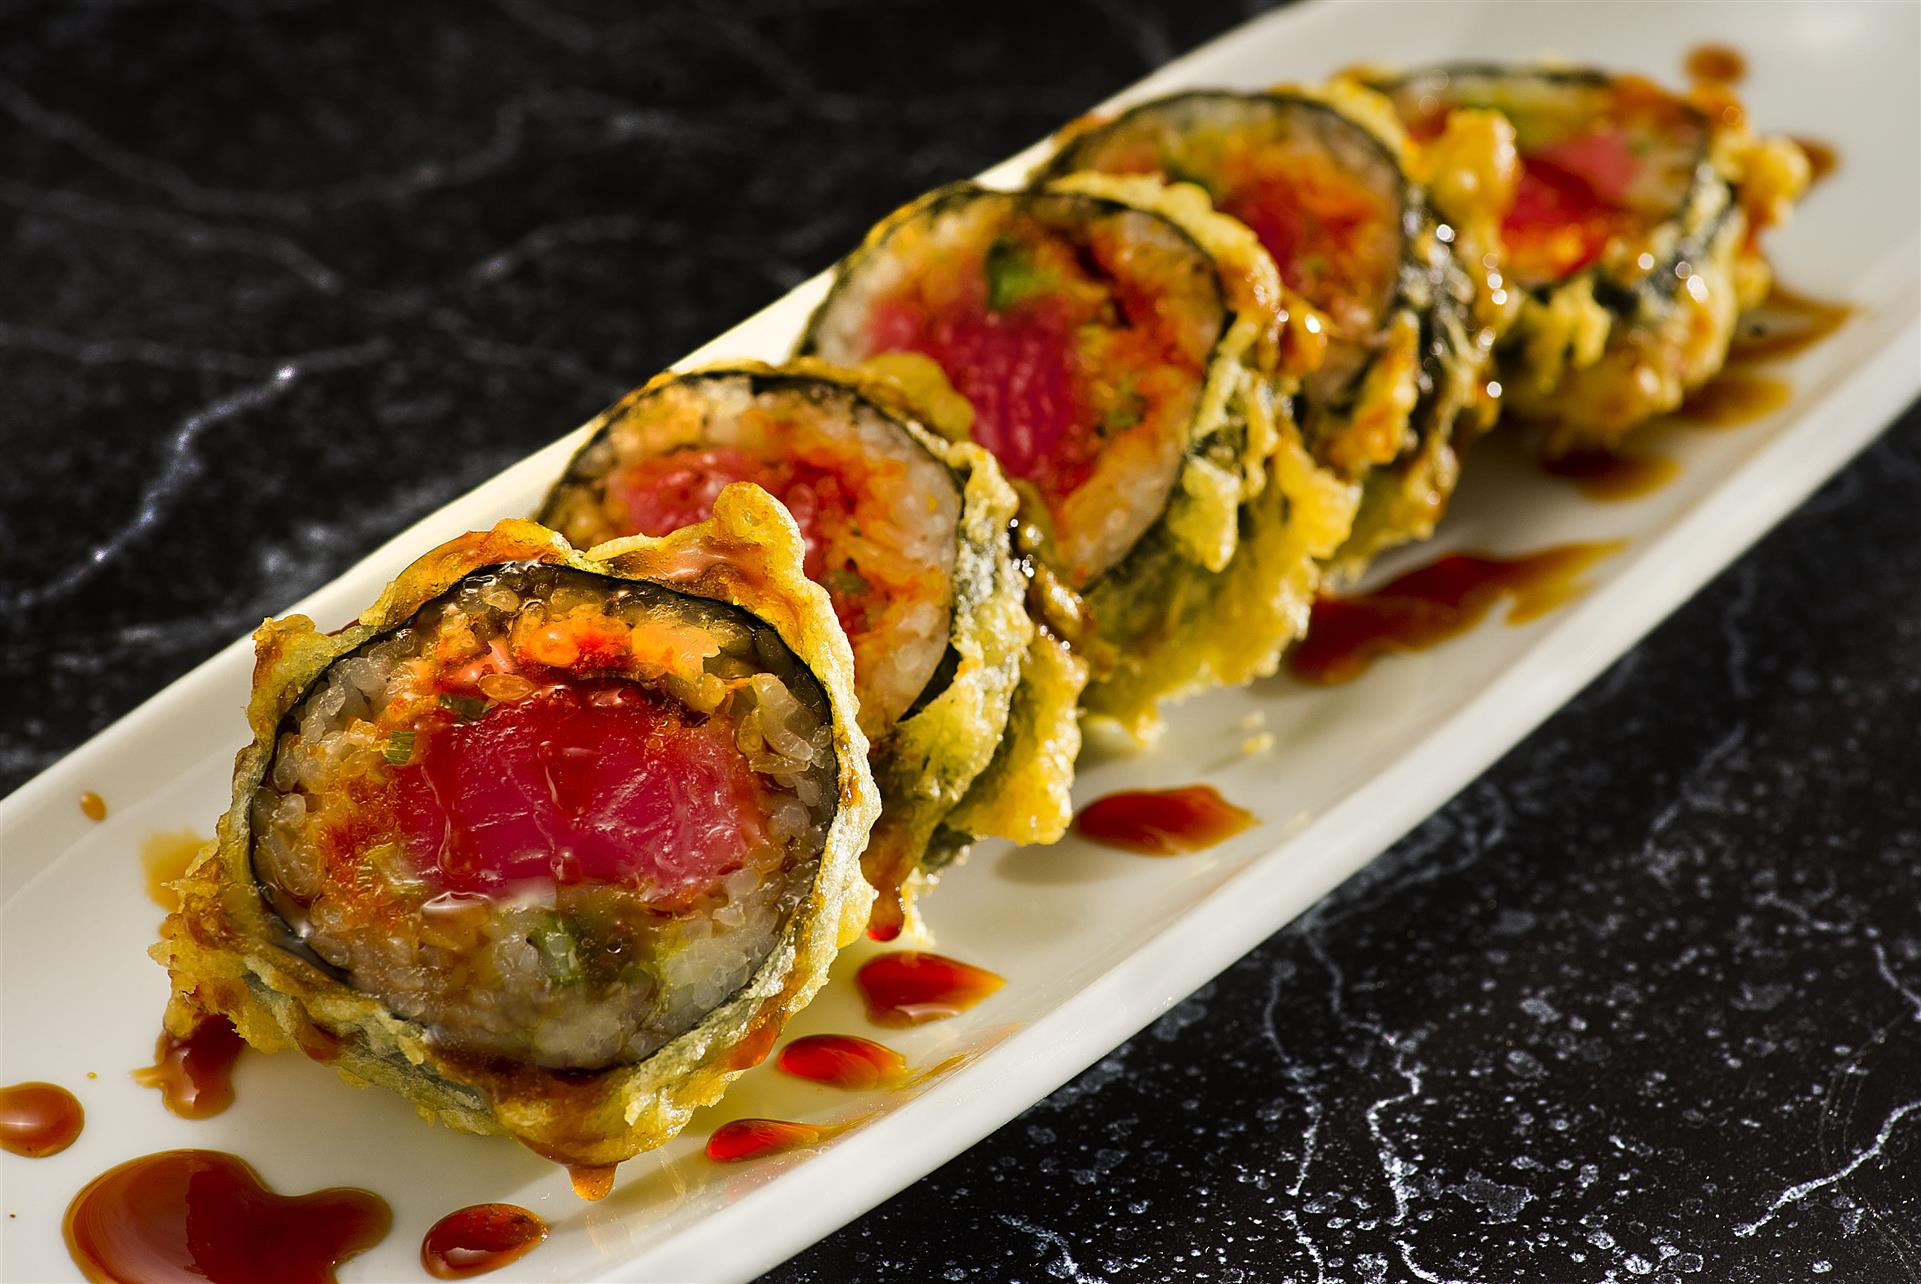 sushi roll with tuna, avocado, salmon roe, covered and tempura fried with a brown sauce